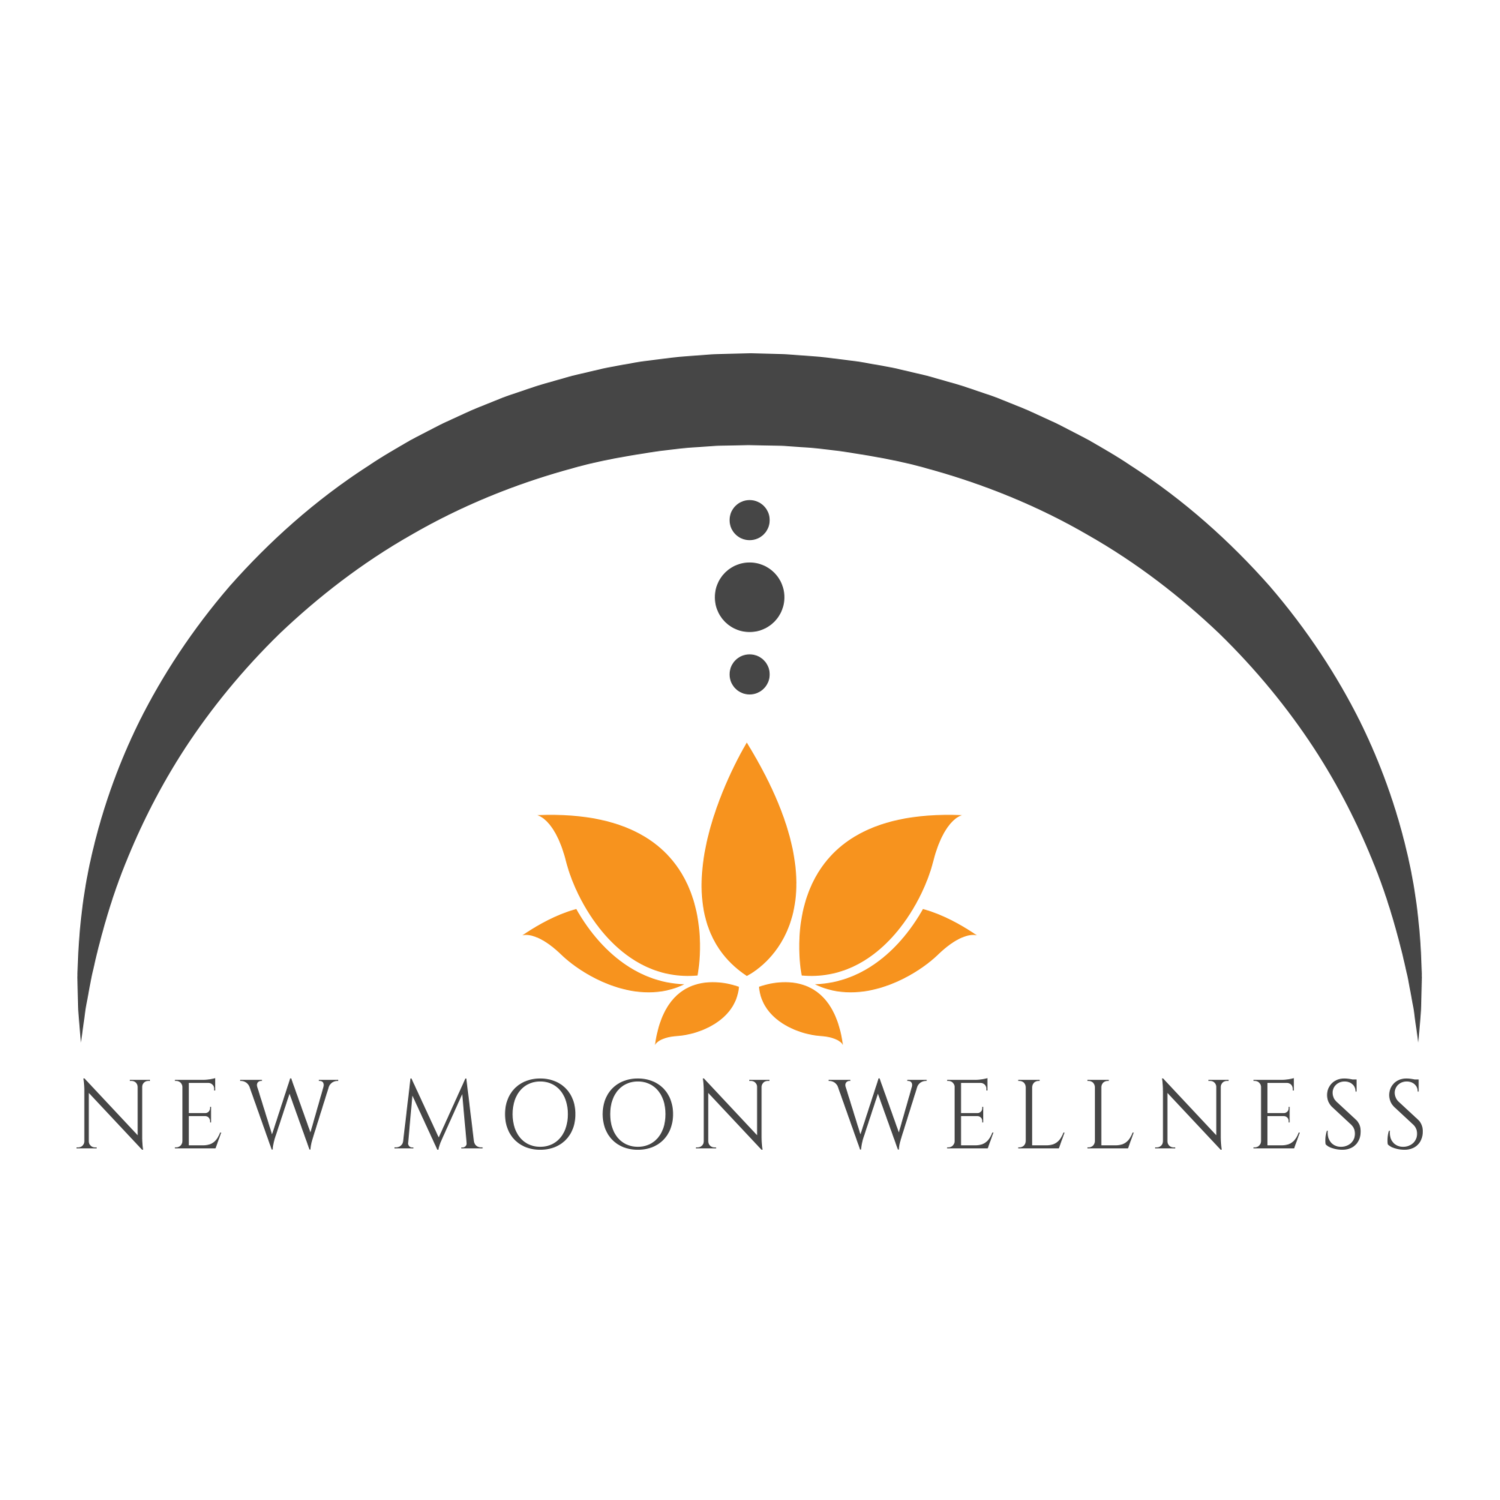 NEW MOON WELLNESS